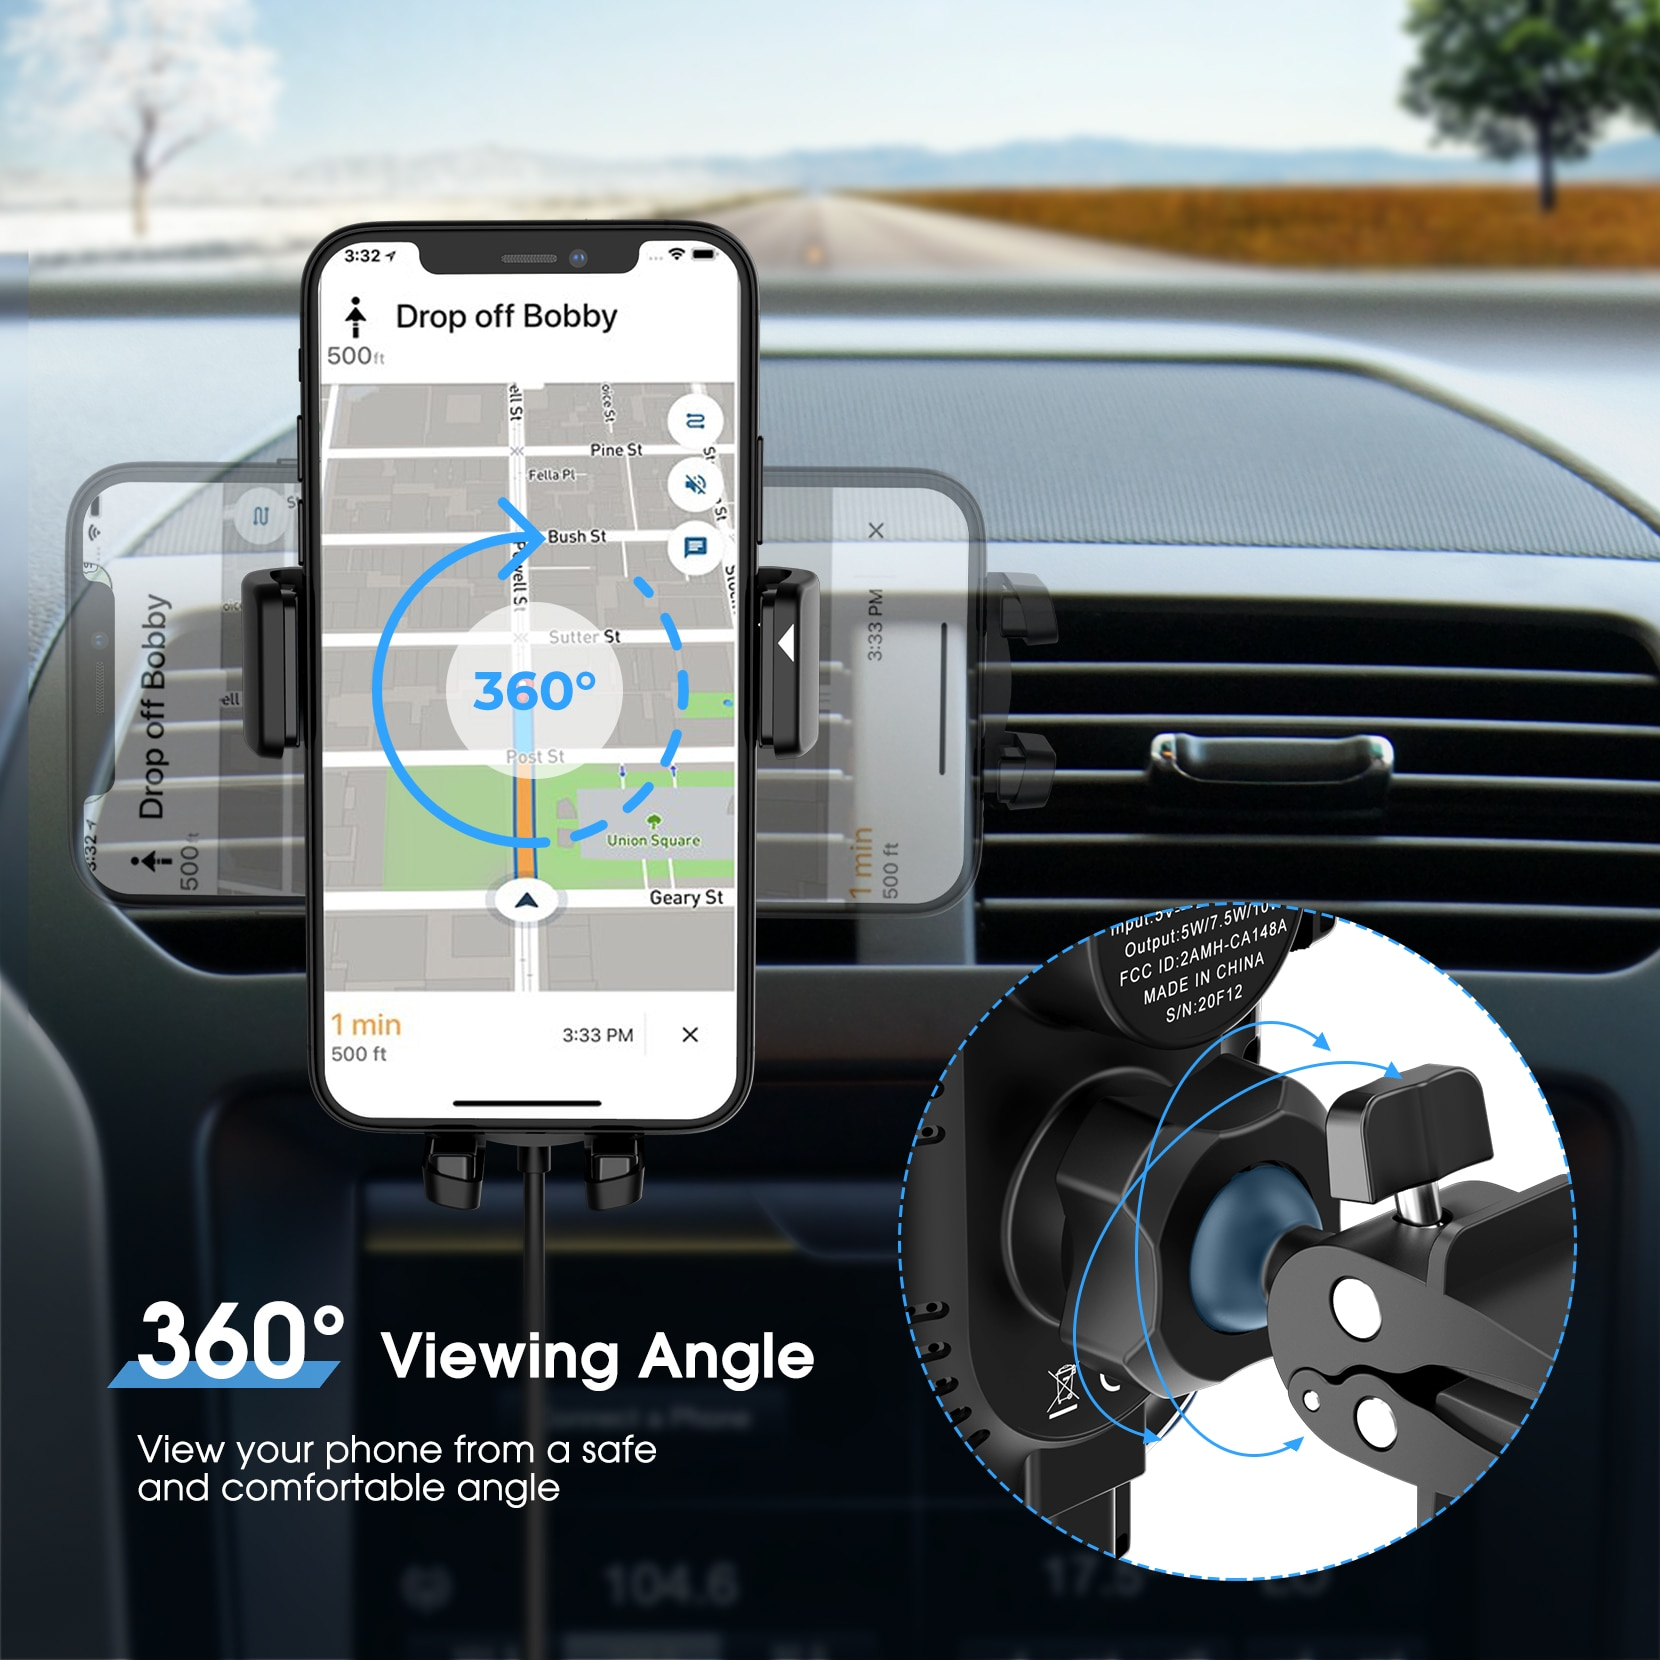 Hd972dd89622742b7ba51adad0b1aac16x - Mpow Wireless Car Charger Mount 10W Auto-clamping Qi Fast Charging Car Mount with Power Storage Car Phone Holder for iPhone 12